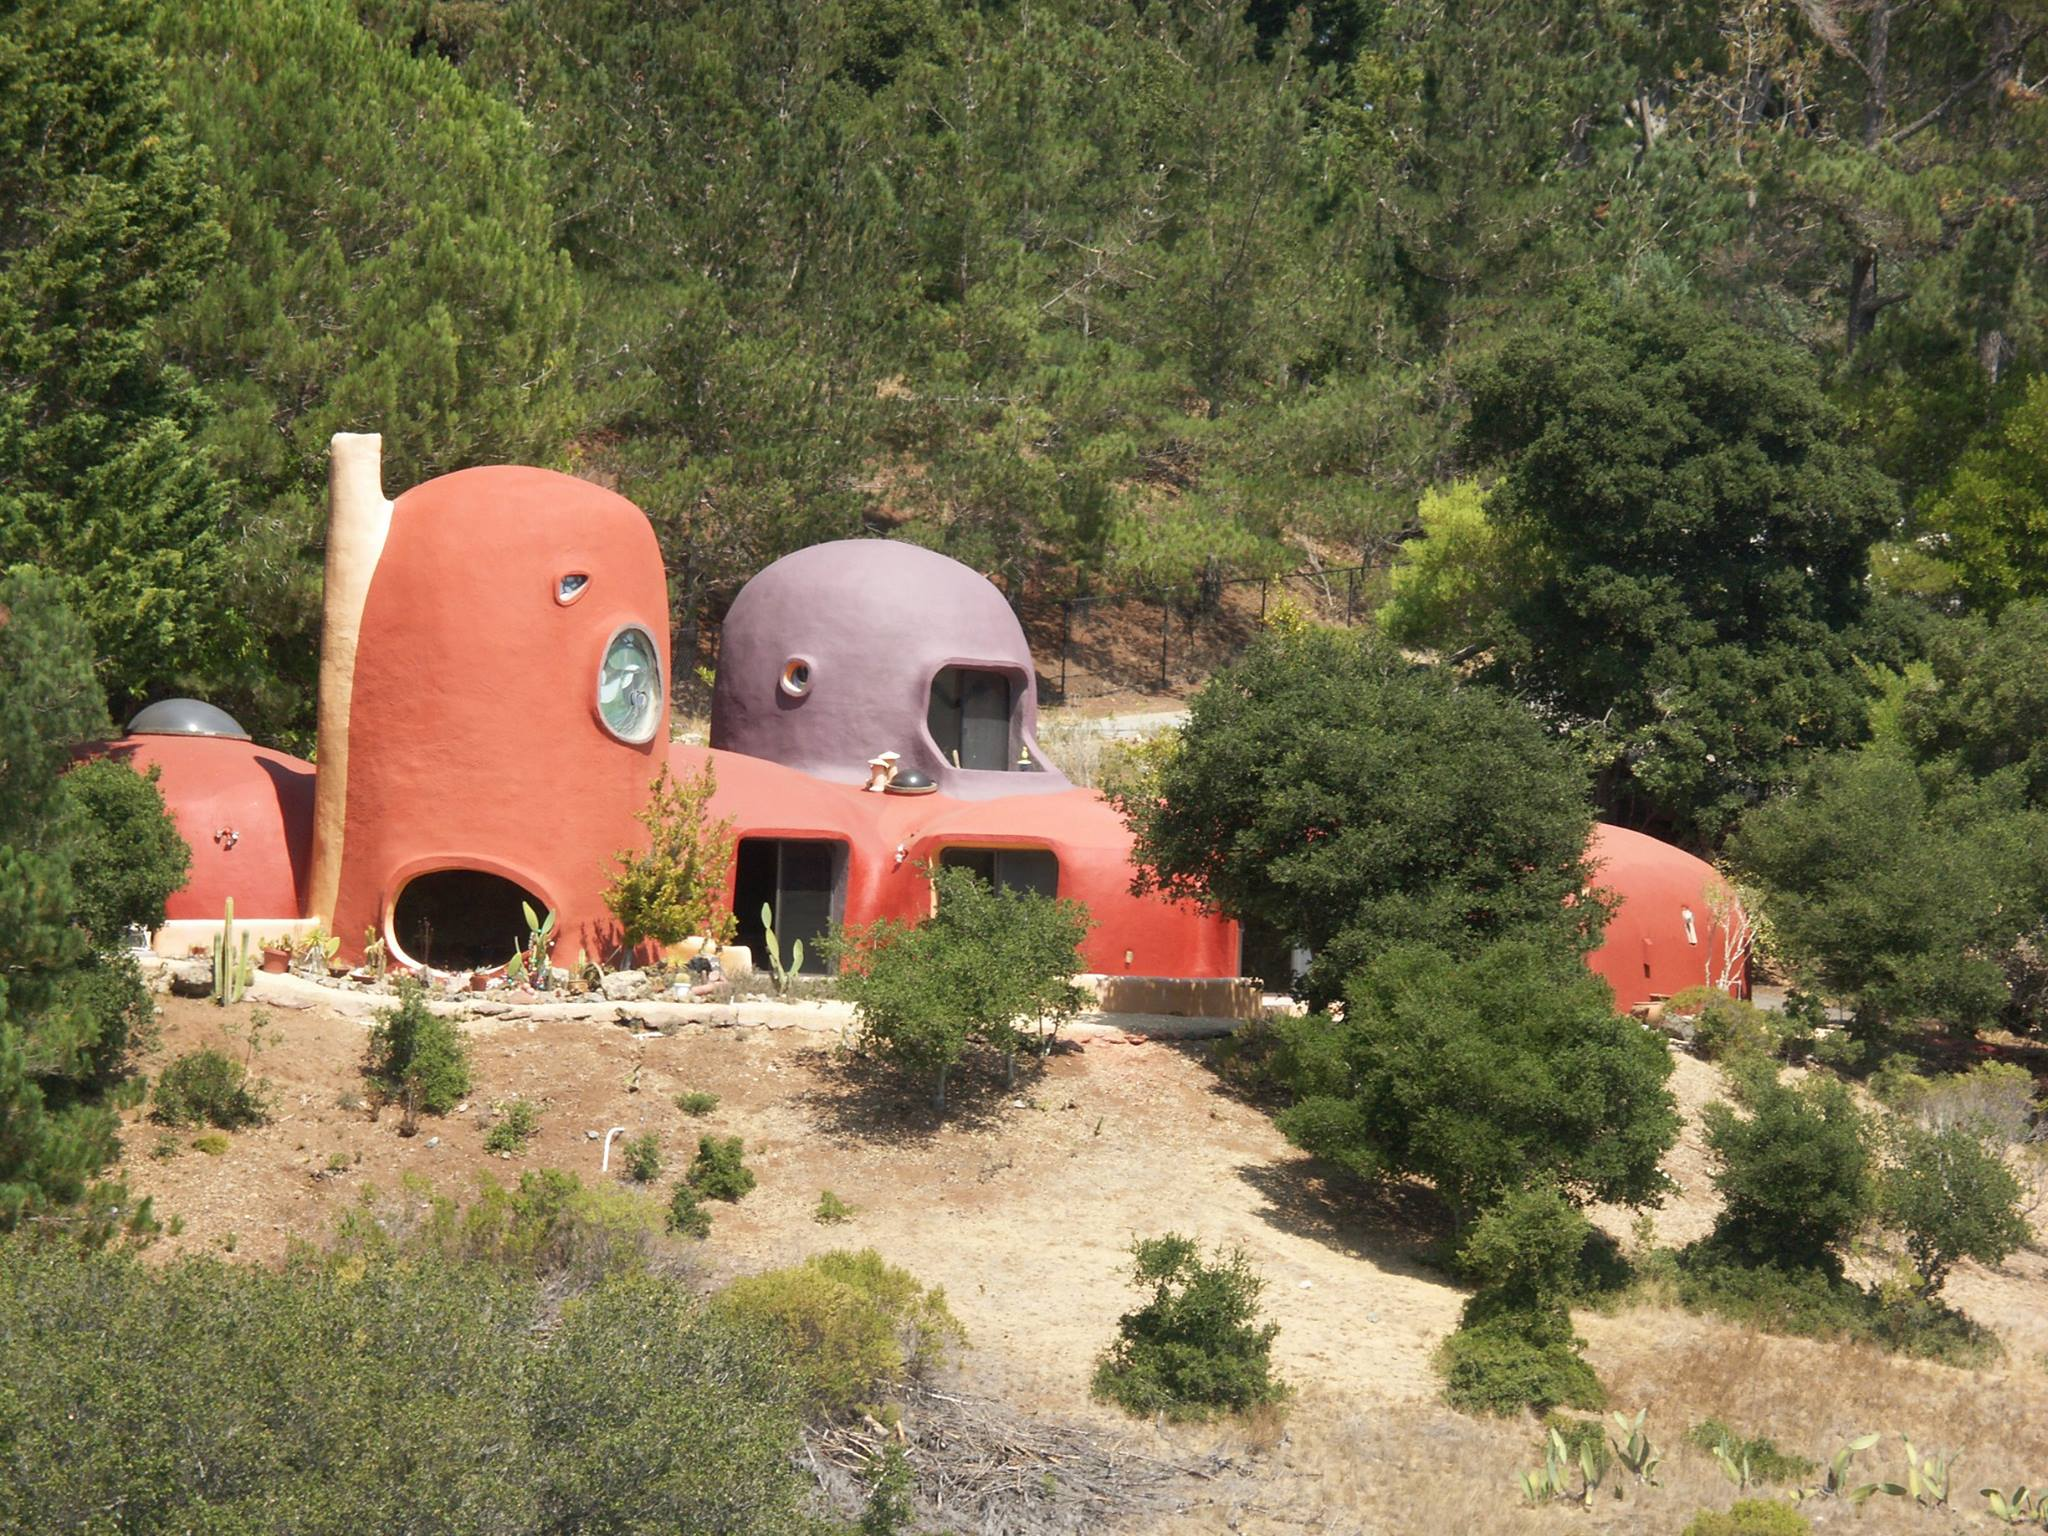 A blobby orange home in the hills